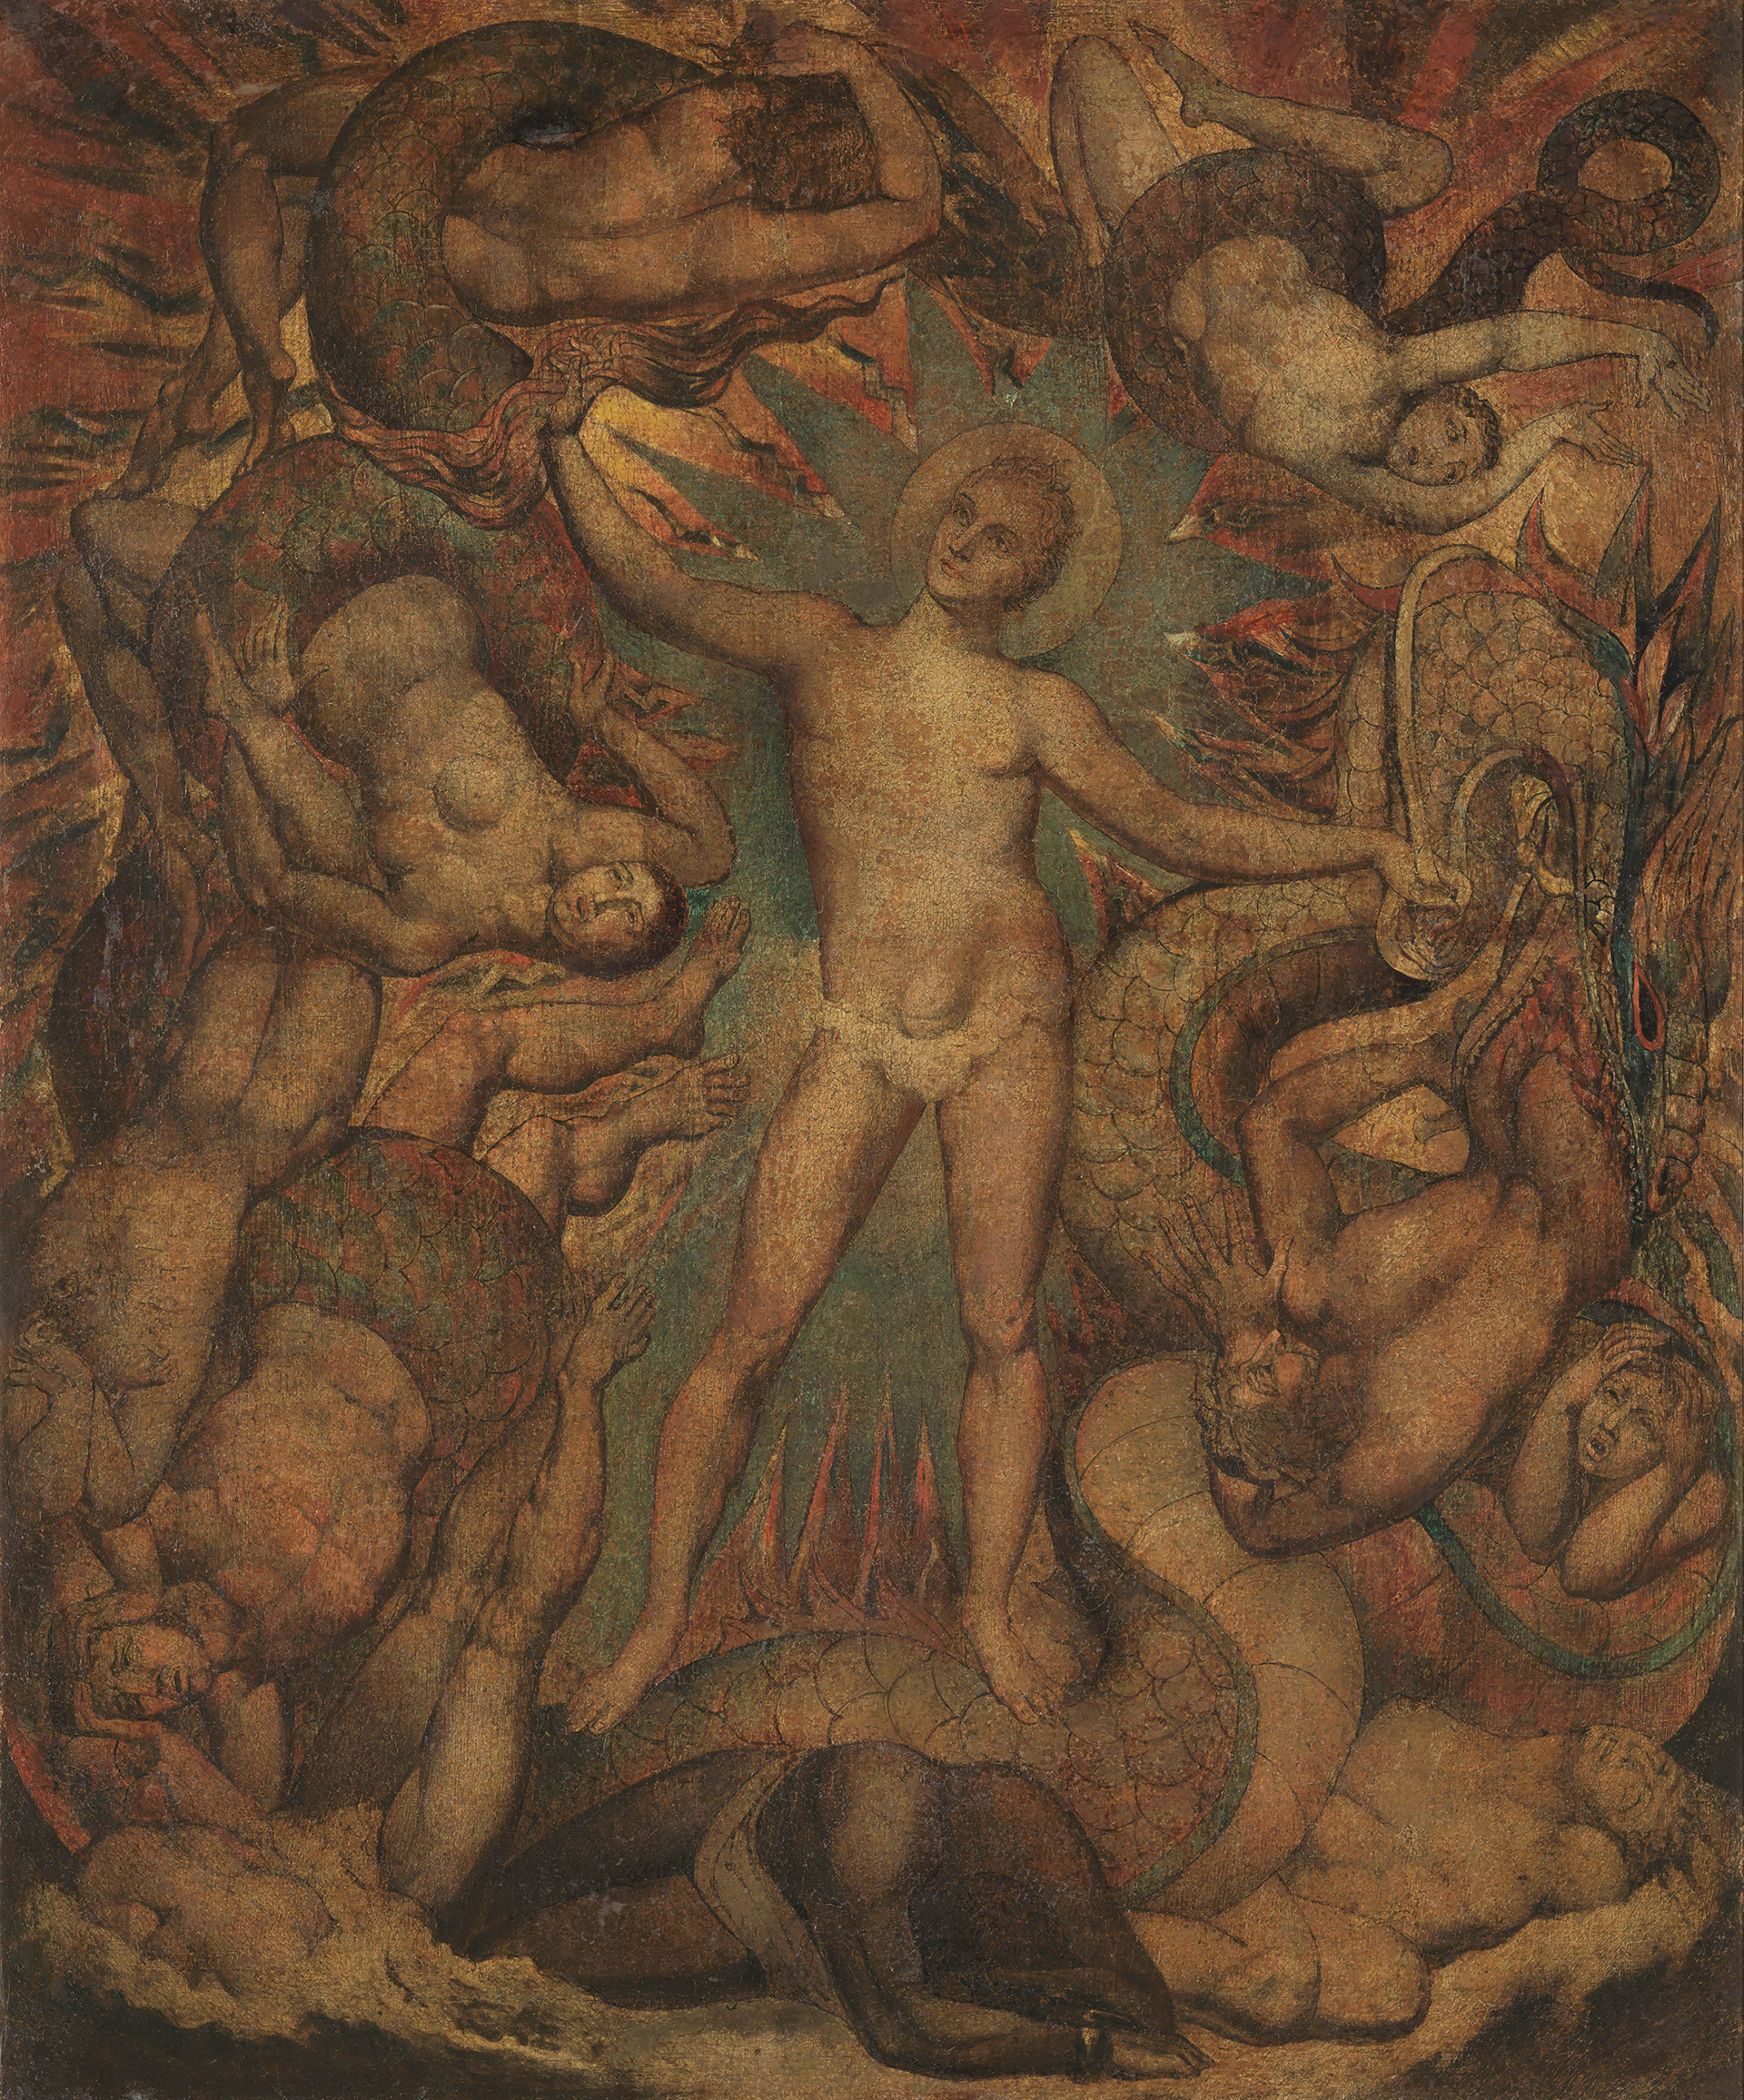 William Blake, The Spiritual Form of Nelson Guiding Leviathan (c.1805-9) | Largest survey show of work by William Blake | STIRworld